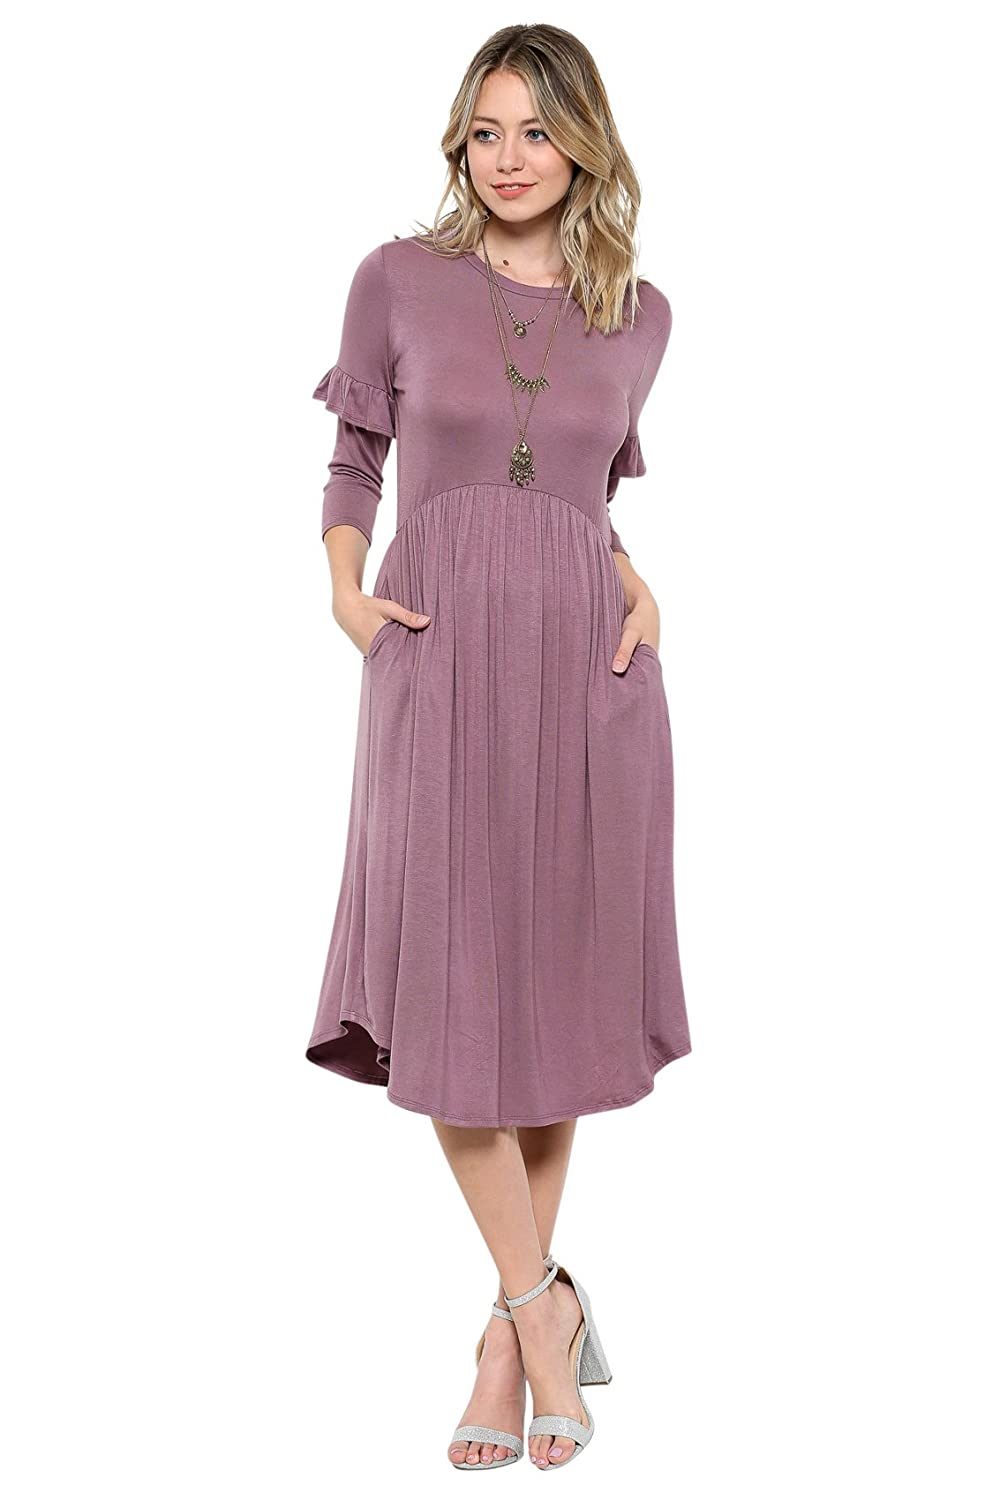 6c0e64f8ad Modest midi-length dress with gathered elastic waist, ruffled sleeves &  pockets! Fabric is super soft & stretchy so it's comfortable & stylish at  the same ...